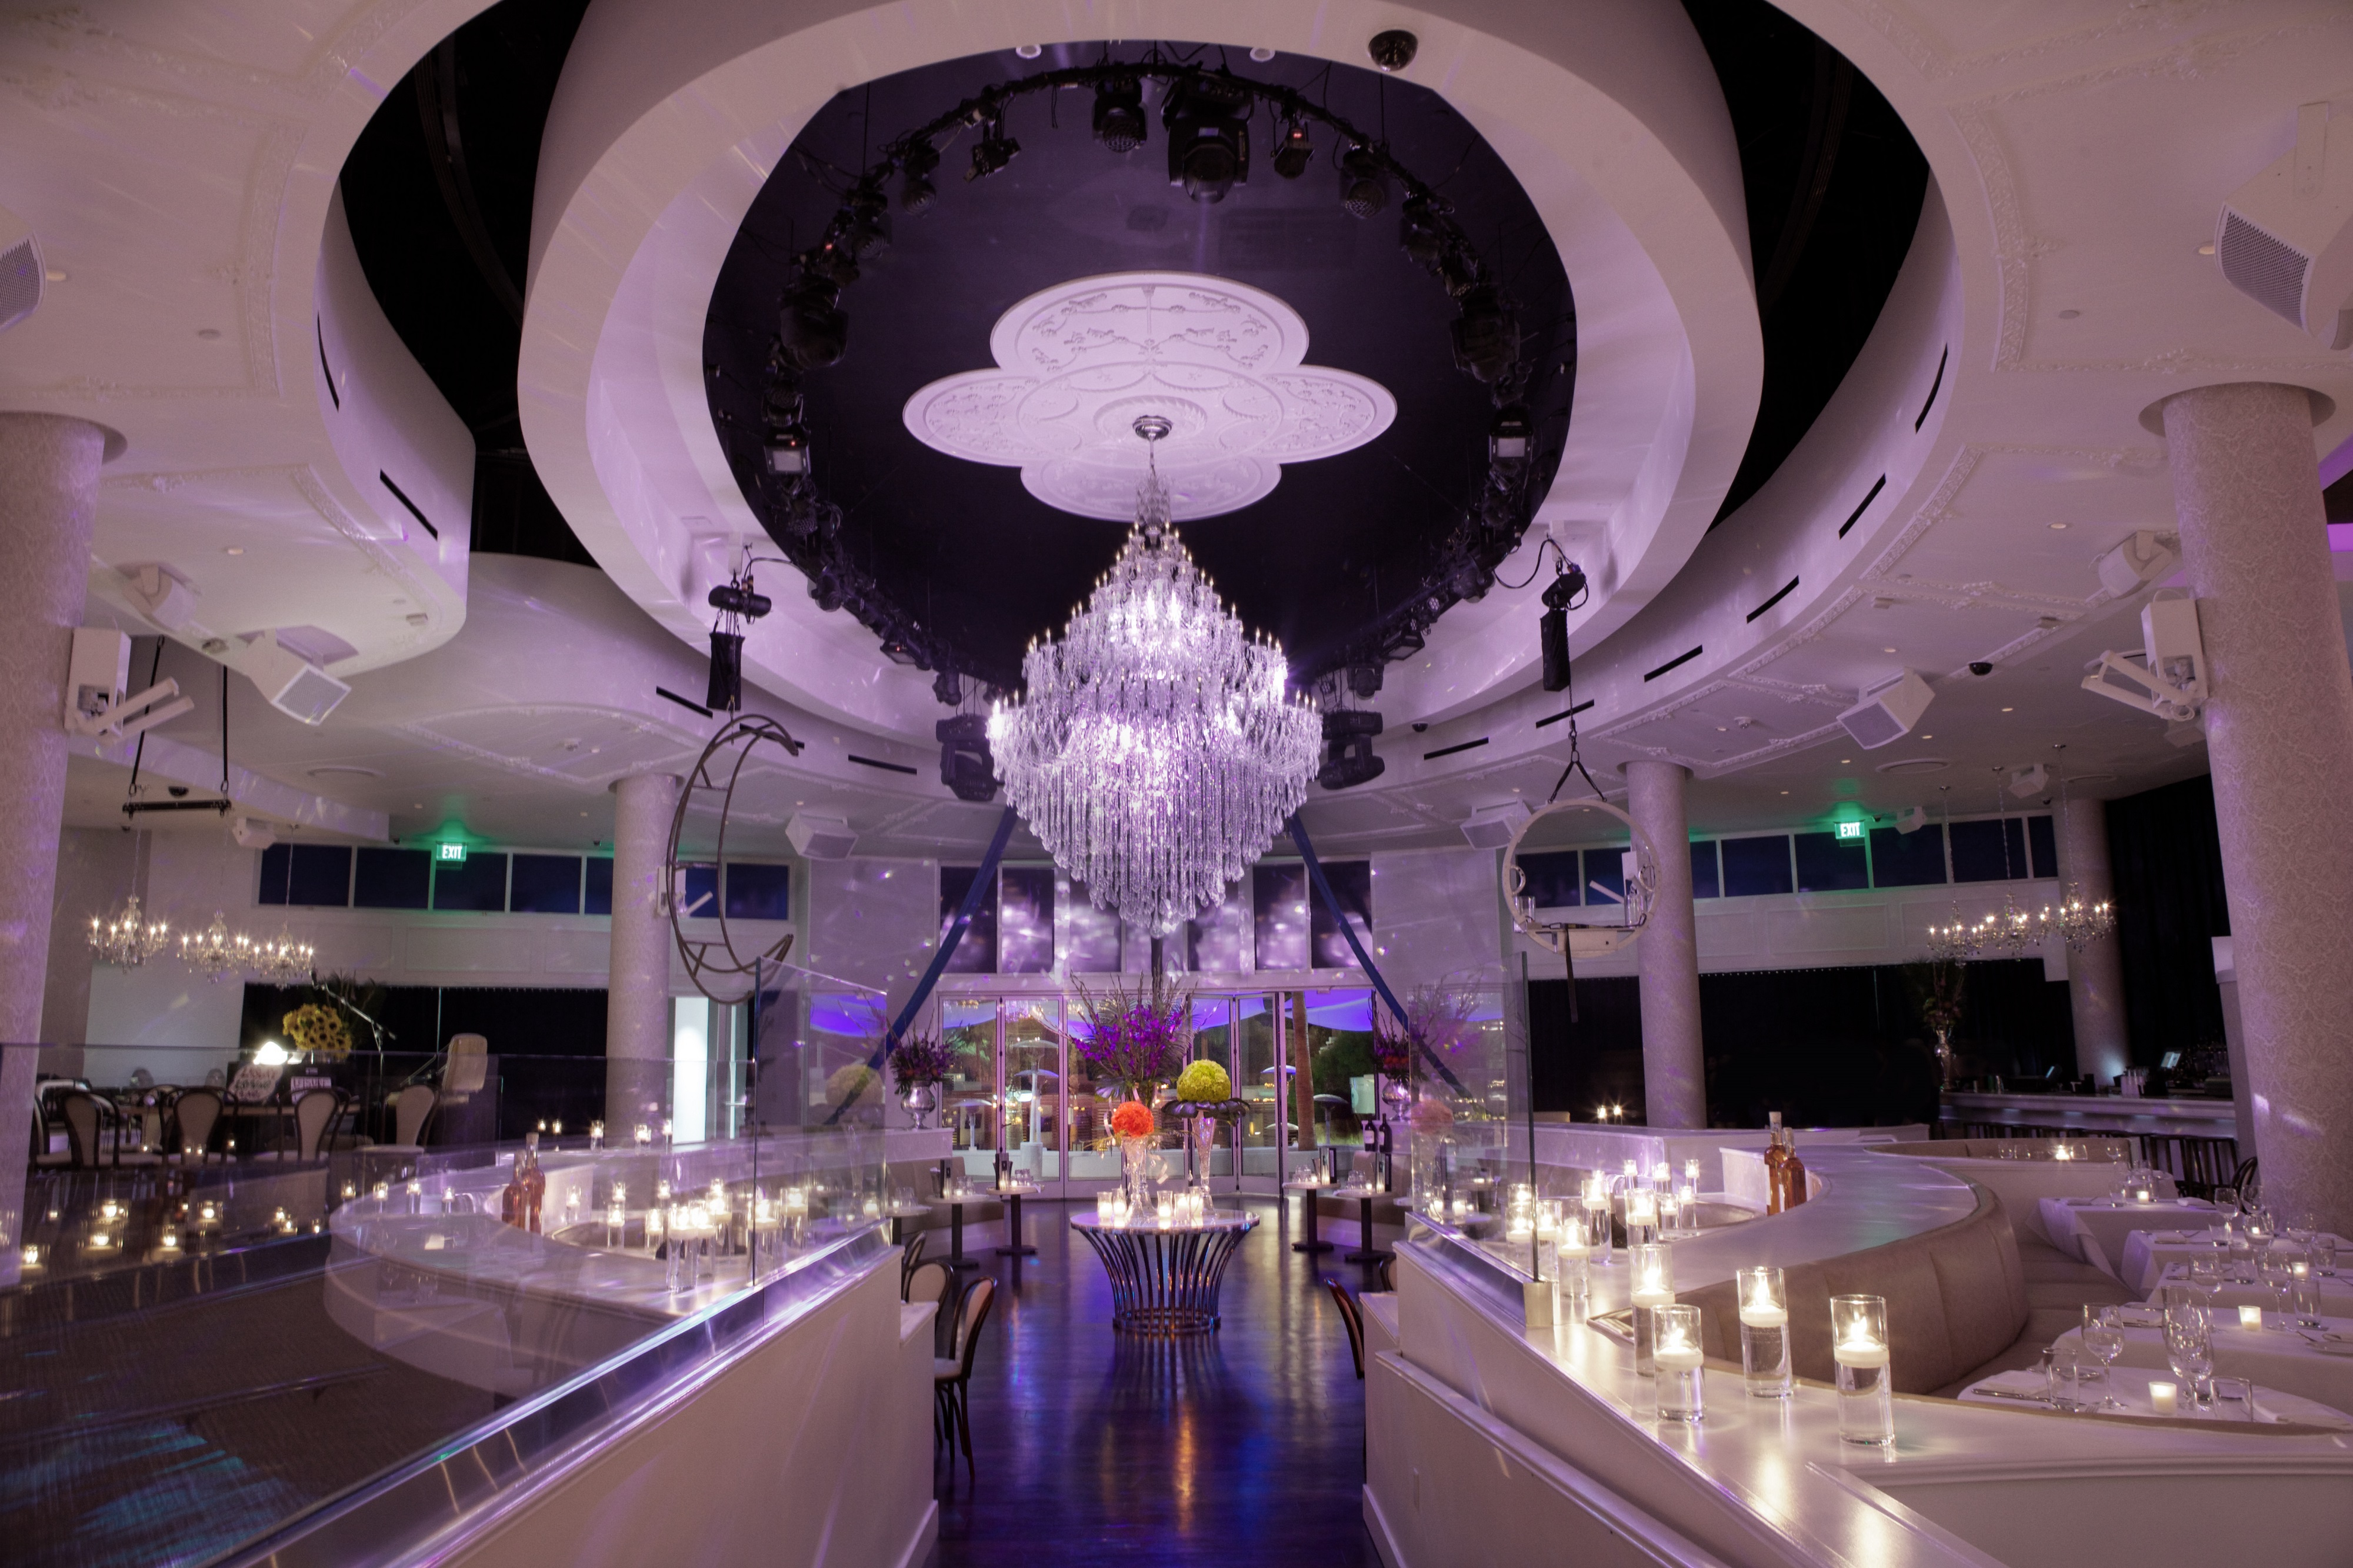 tropicana lv weddings its official wedding season has kicked off in vegas vegas wedding chapels Tropicana Las Vegas Wedding Chapel offers all inclusive wedding packages for your Dream Ceremony